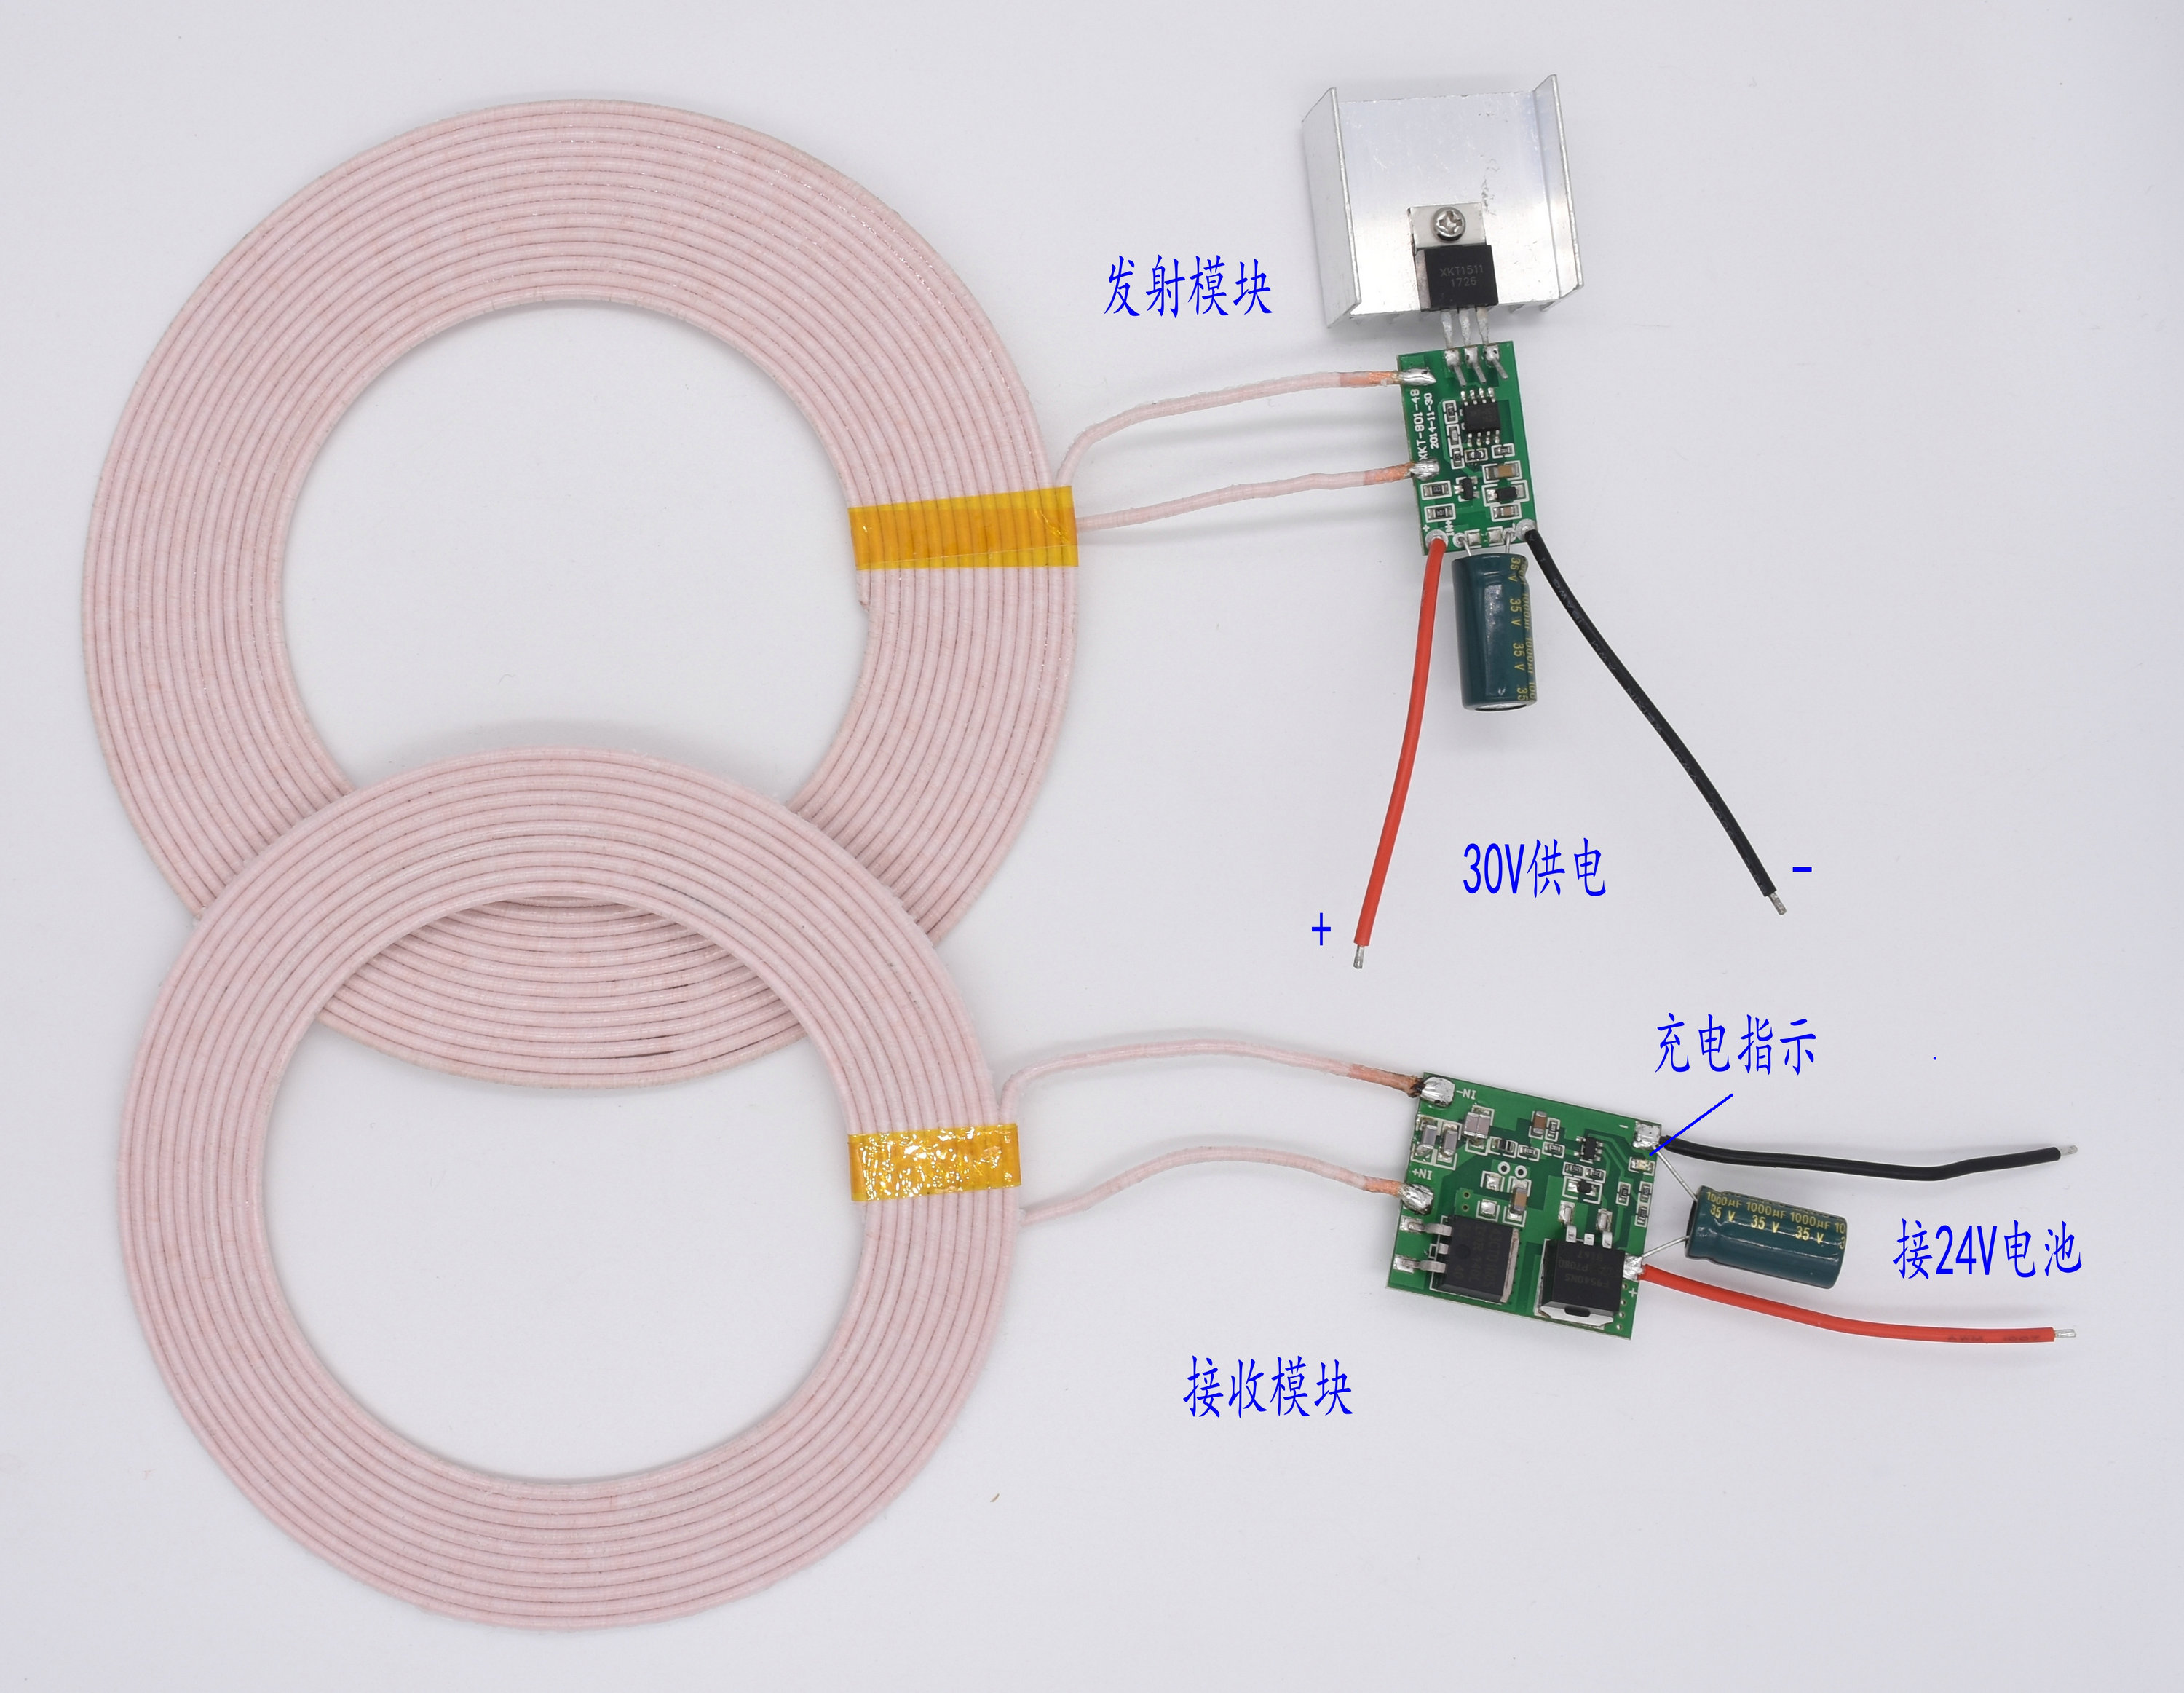 Transmit 32V to Receive and Output 24V2A Wireless Charging Module XKT801 31